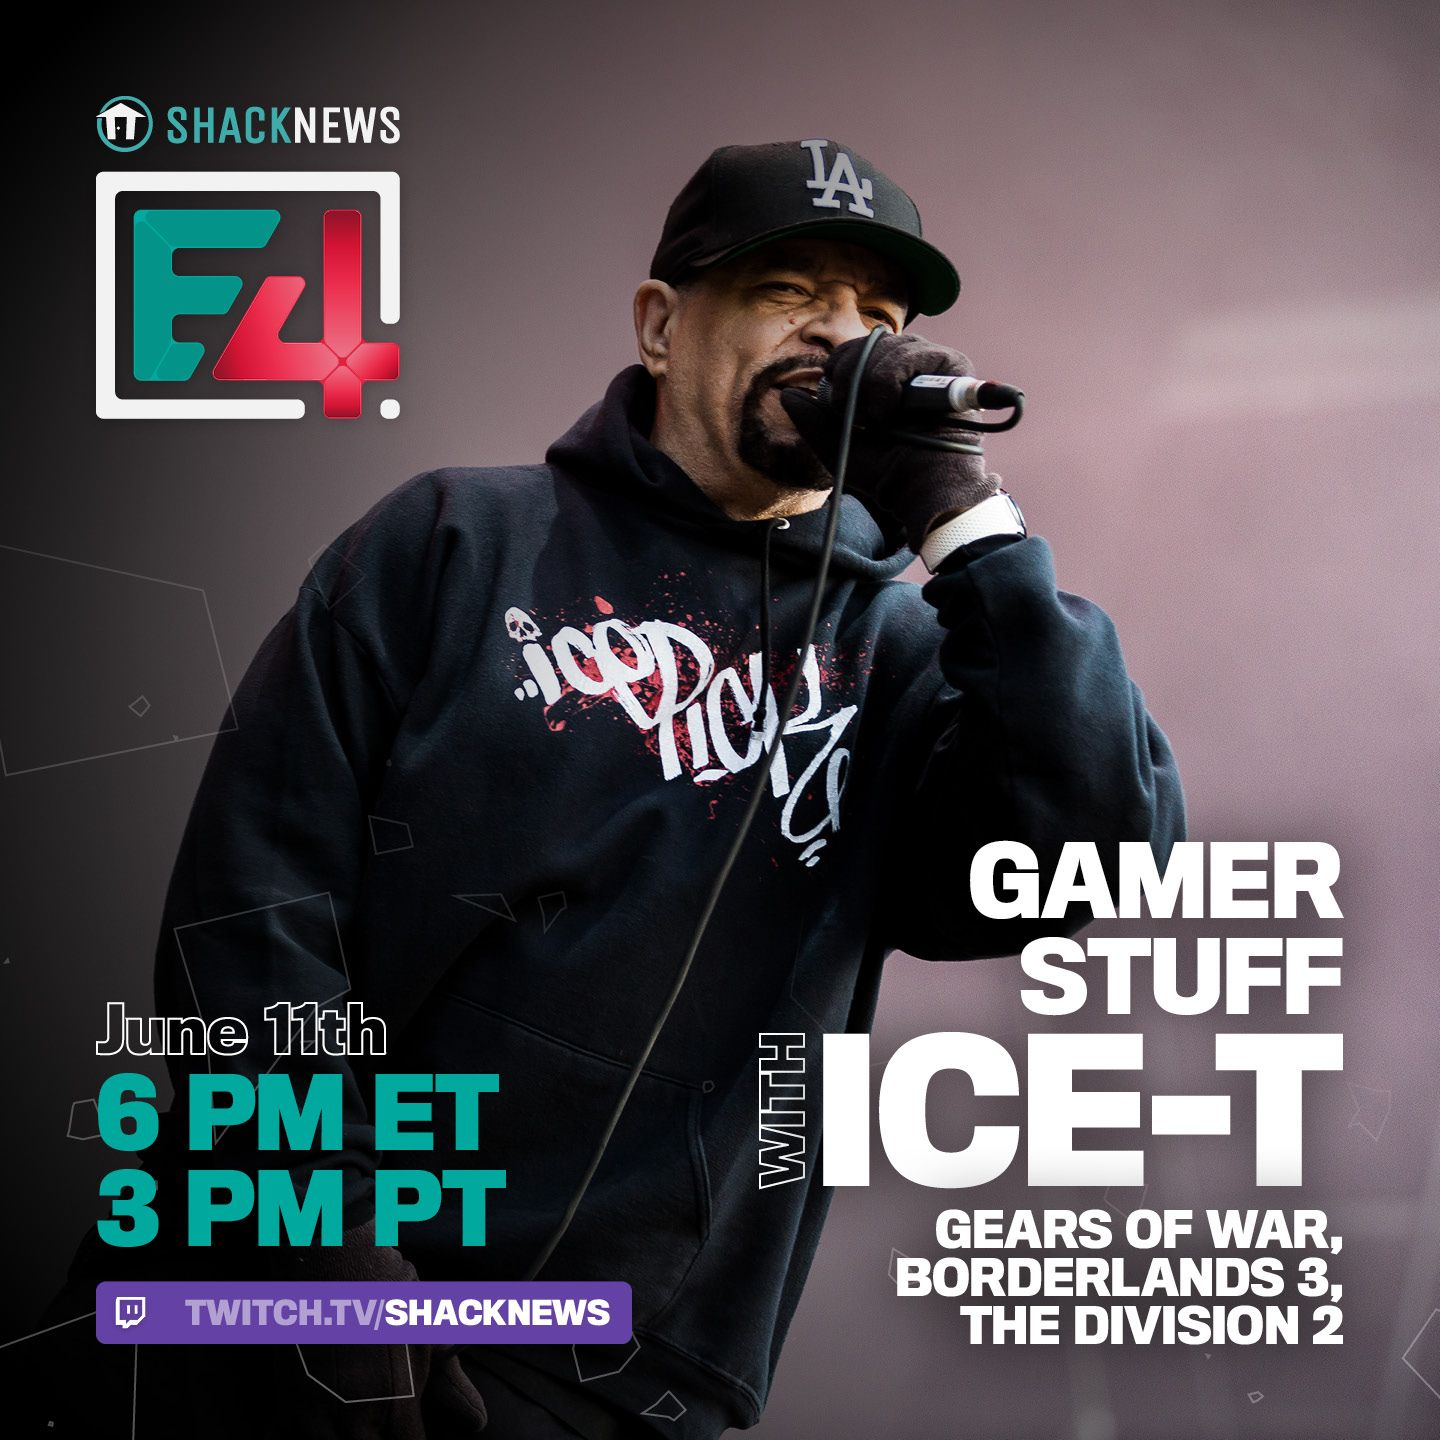 ICE-T and Shacknews are teaming up for a very special E4 livestream!